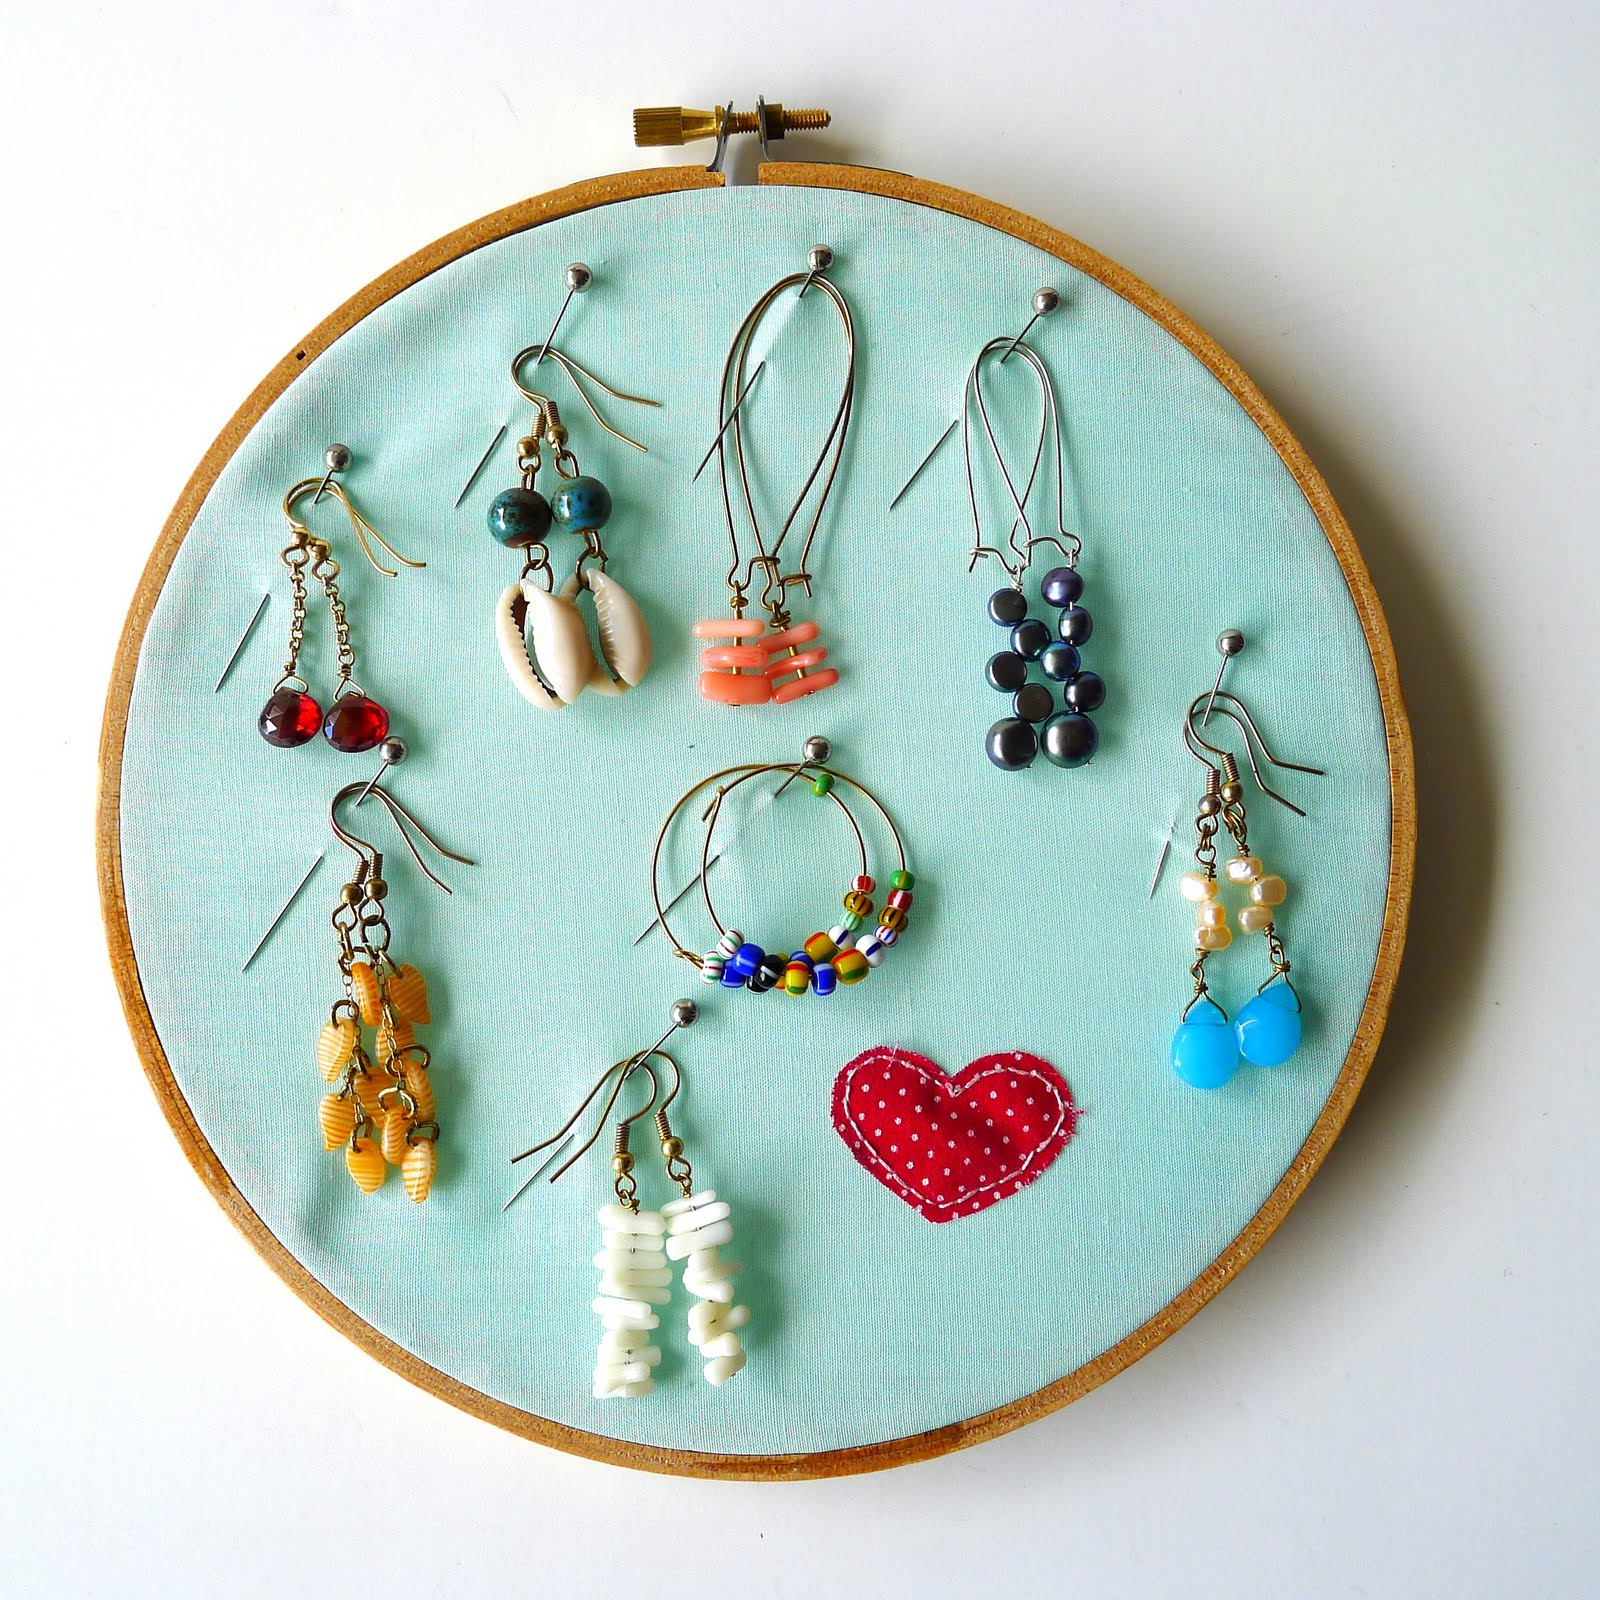 Embroidery Hoop Ring Holder